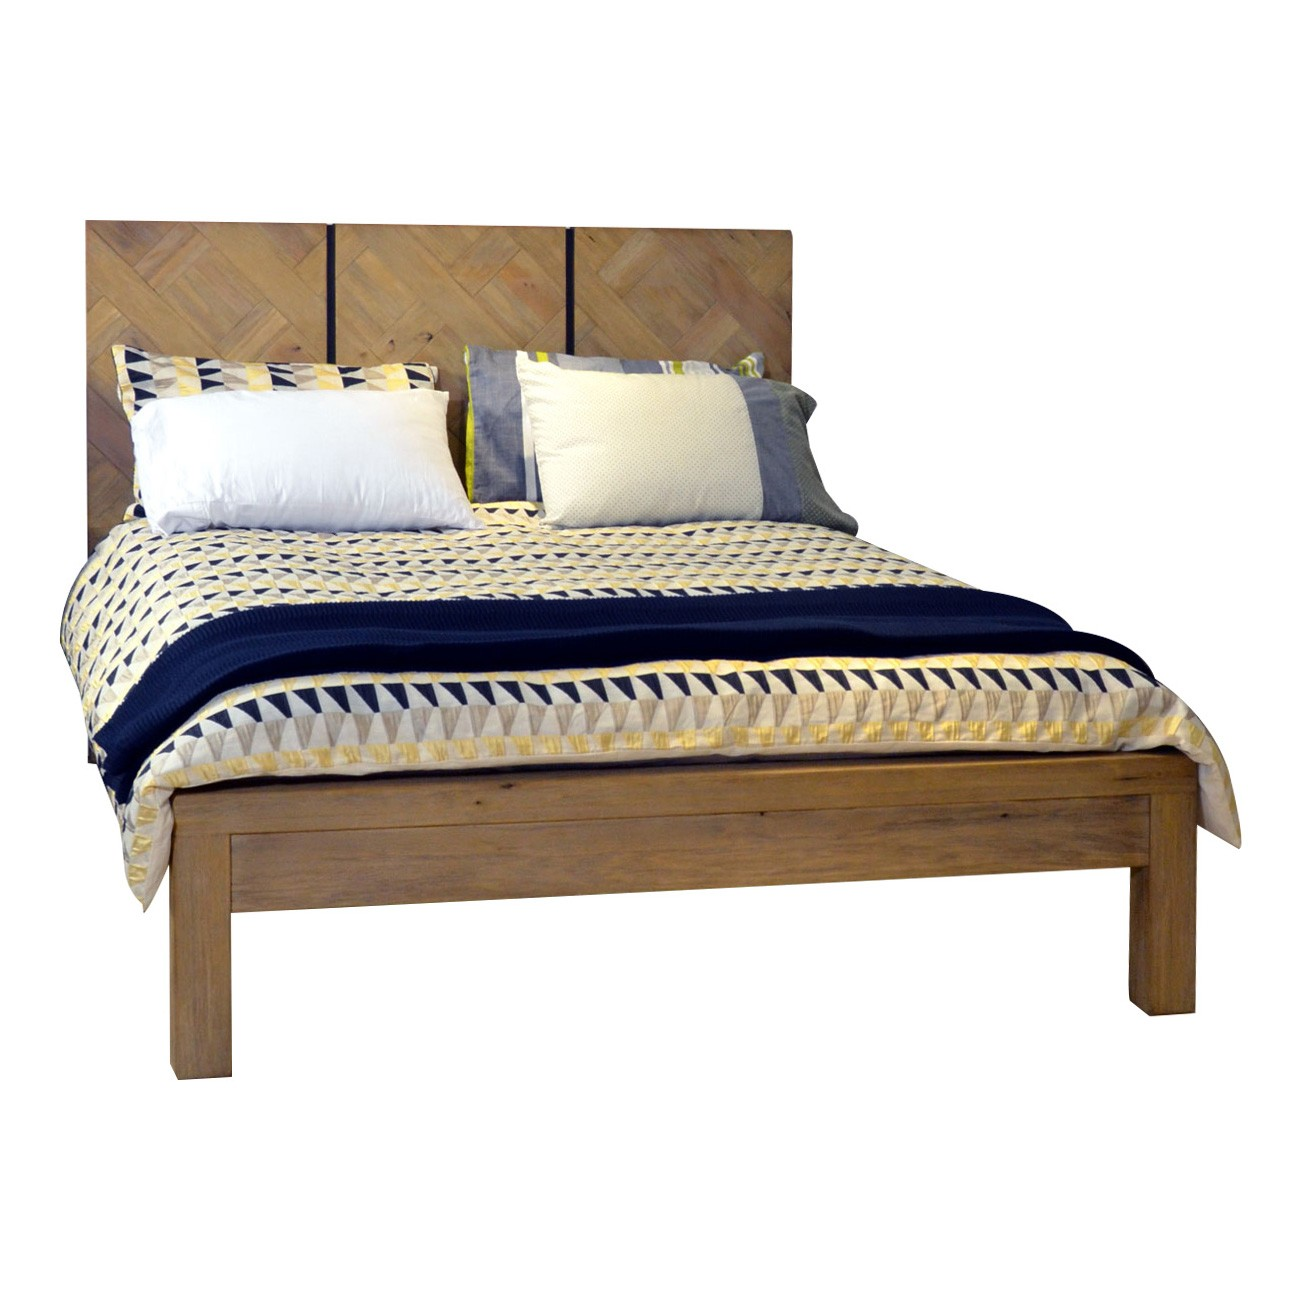 Barnard Mountain Ash Timber Platform Bed, Queen